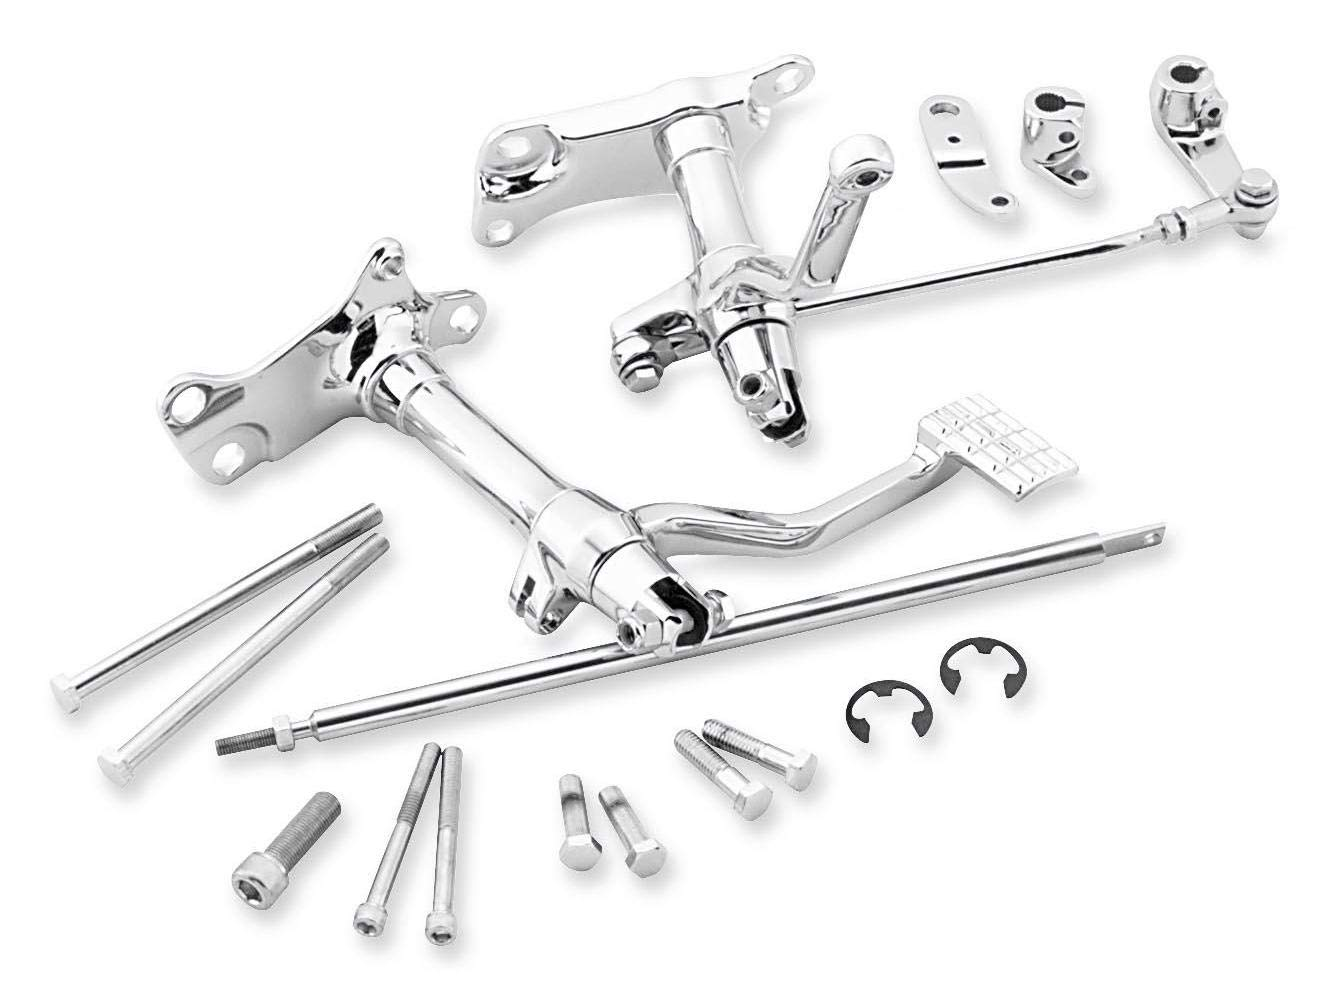 Bikers Choice Shift Rod Replacement for Forward Controls Kit 056501 Biker' s Choice TRTD0267 tr-490023